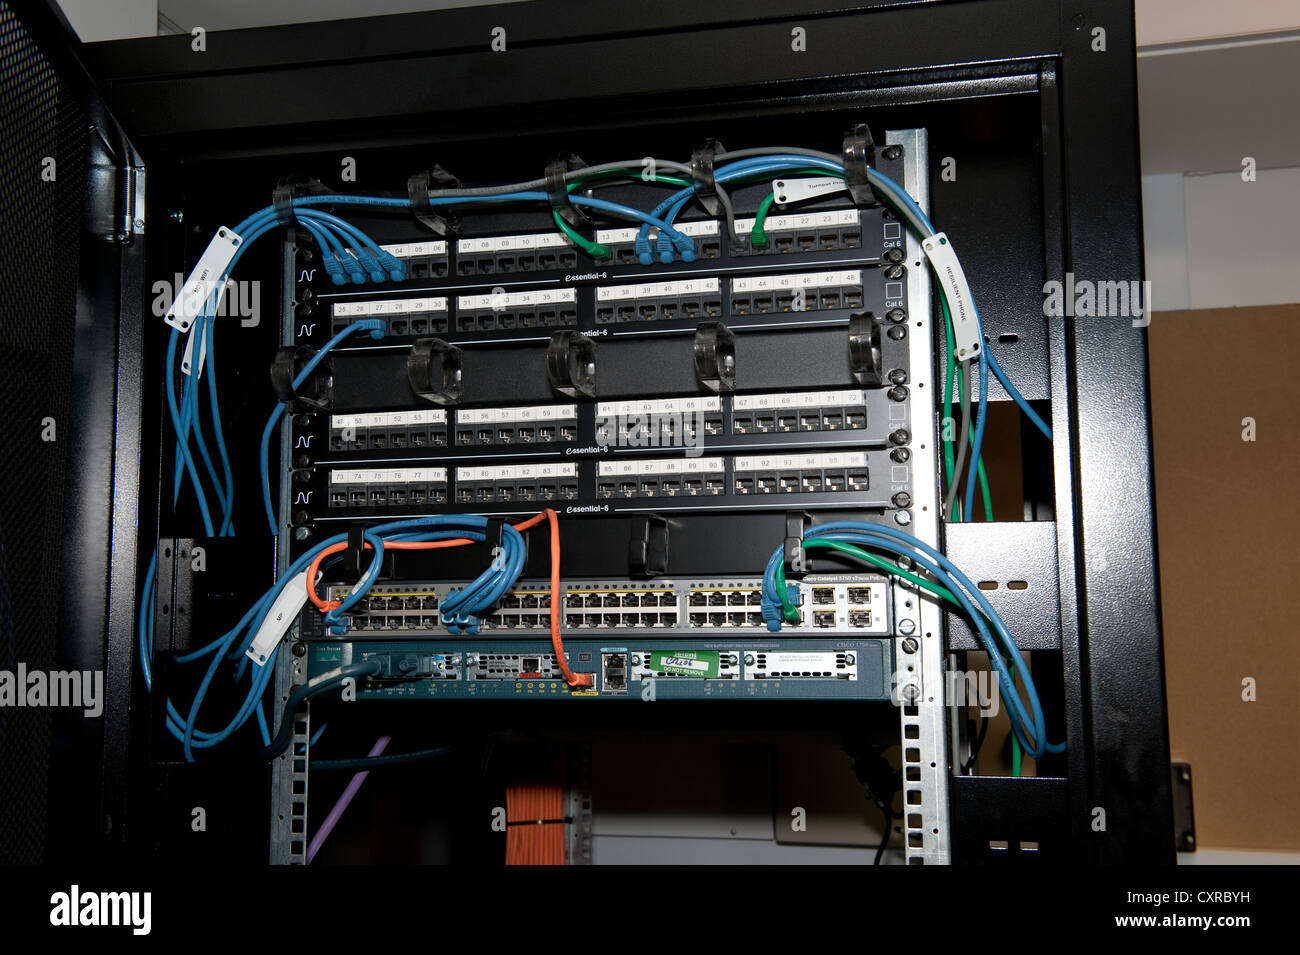 Patch Wiring Racks Wire Center Panel Cabling Installation Photo Gallery Jt Cat5 5e Computer Rack Cables Stock 50916085 Alamy Rh Com Basic